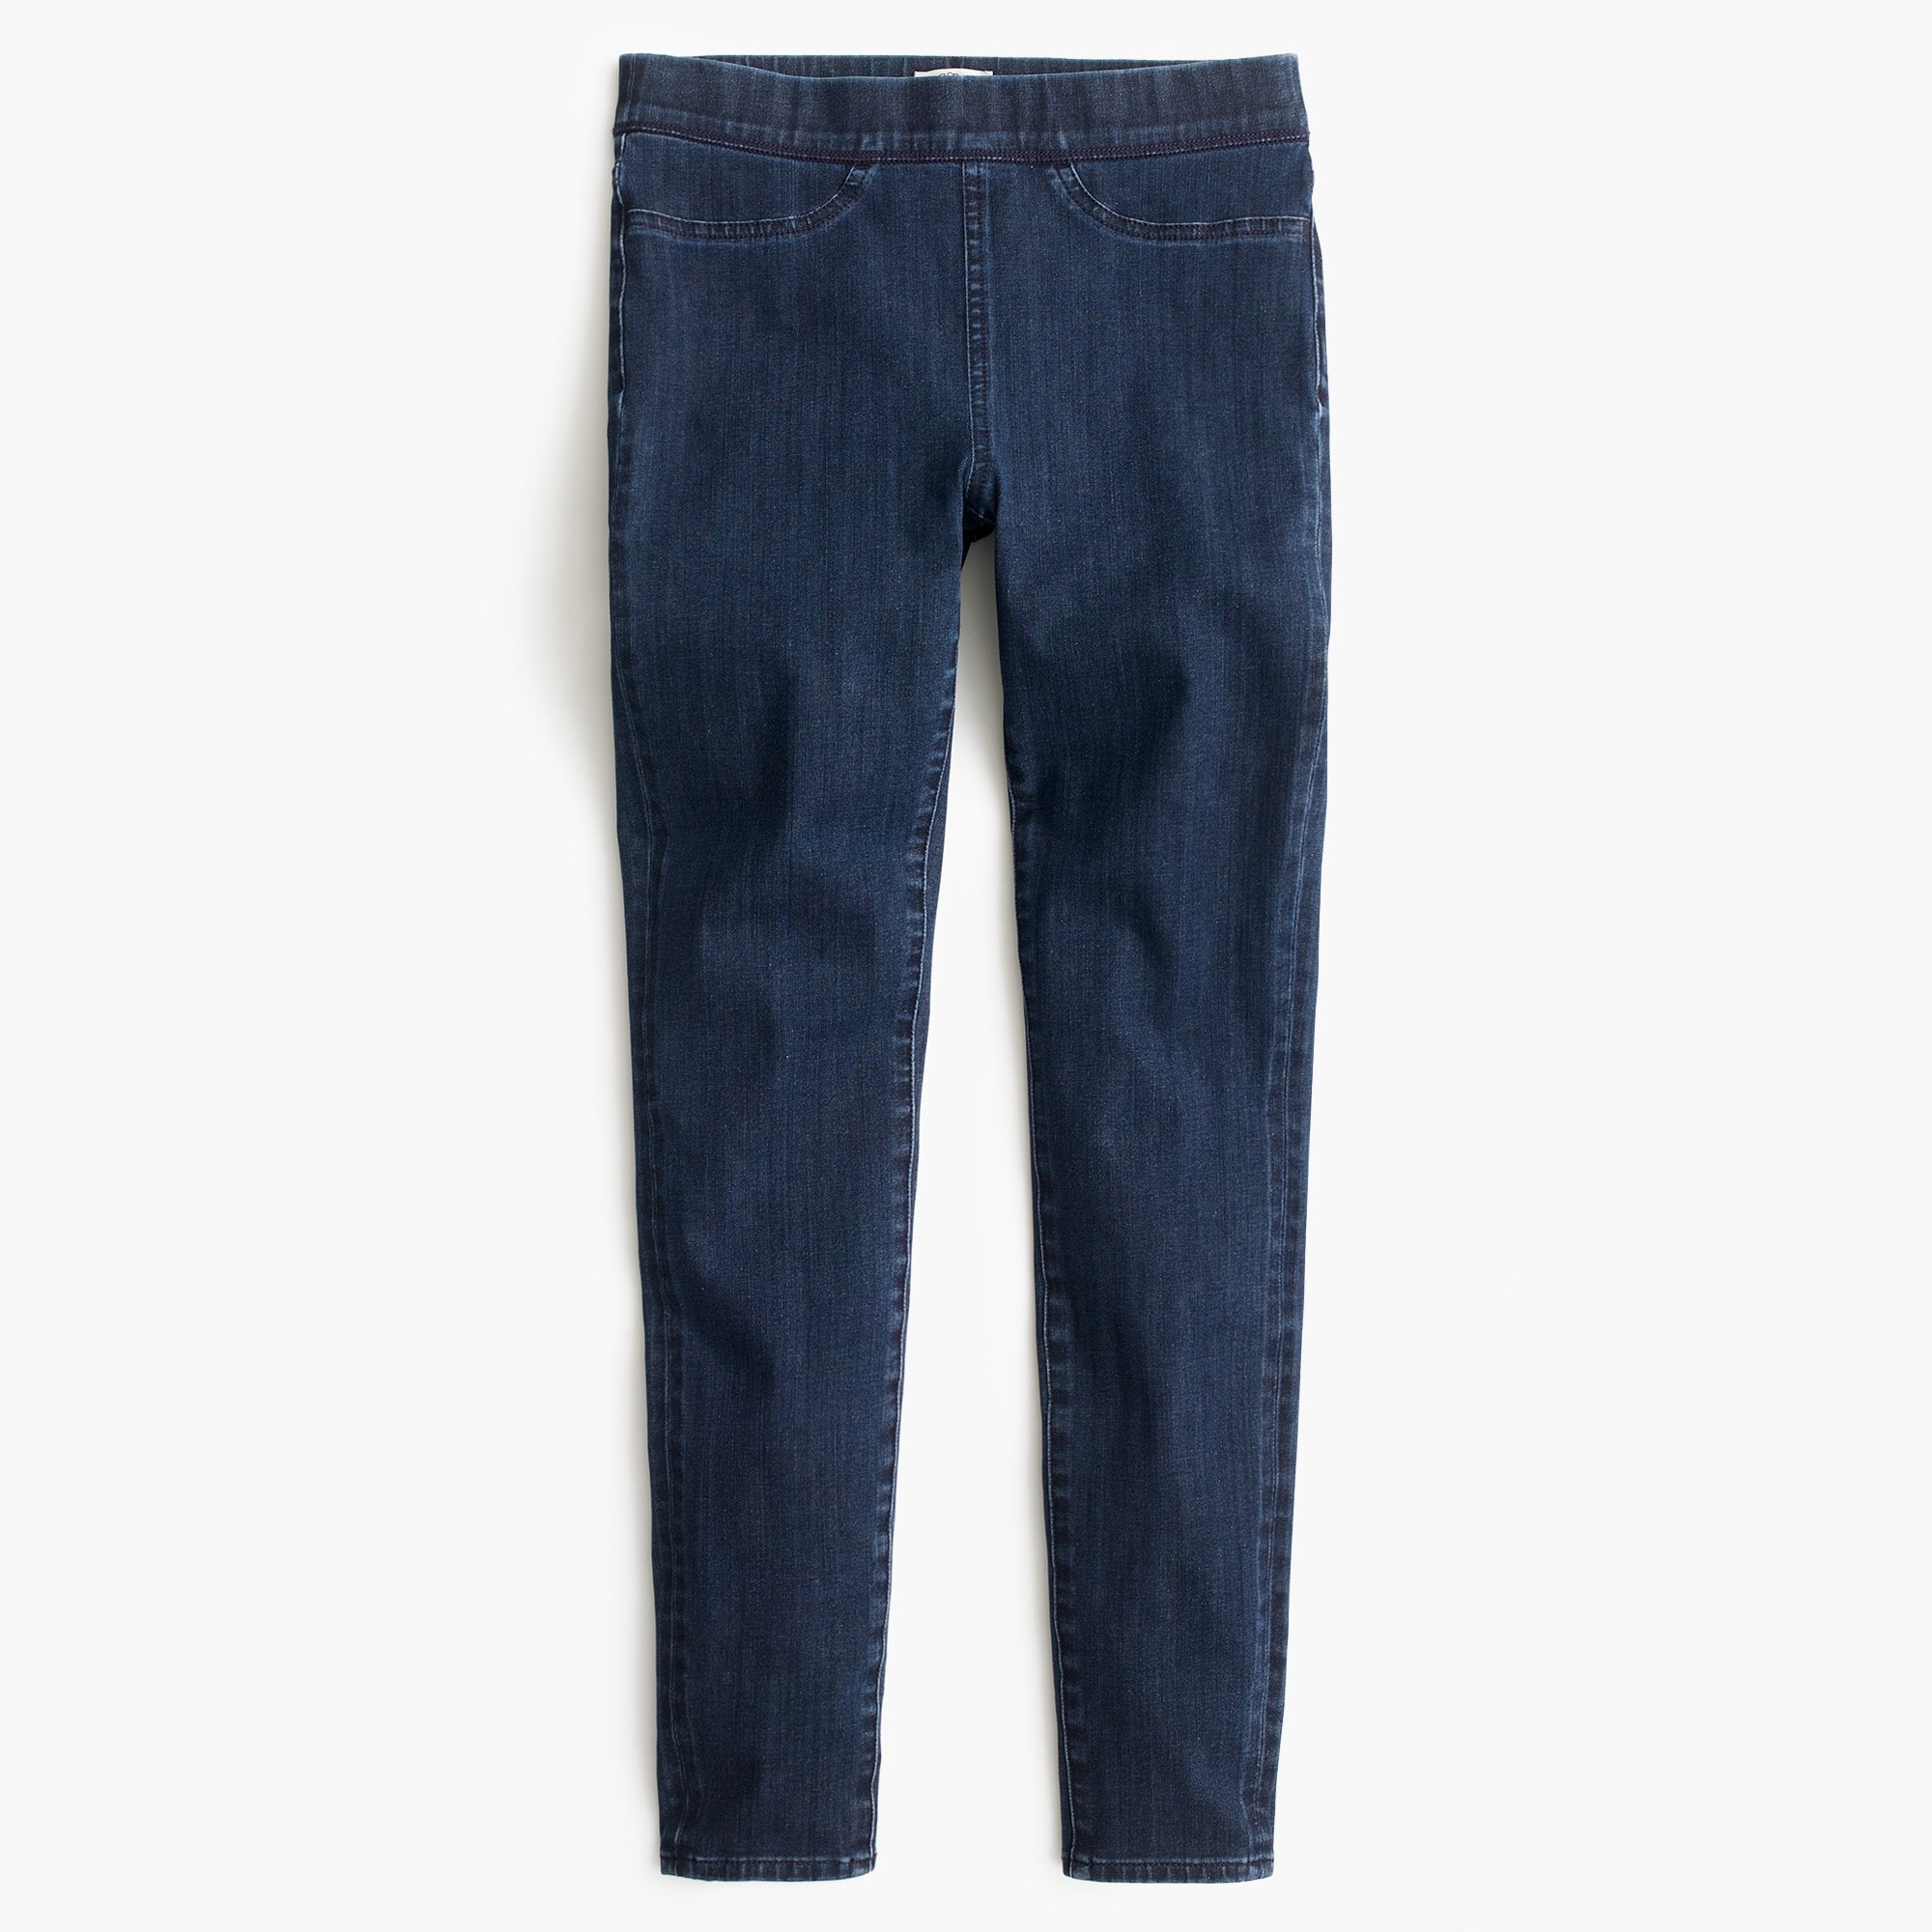 Pull-on toothpick jean in indigo